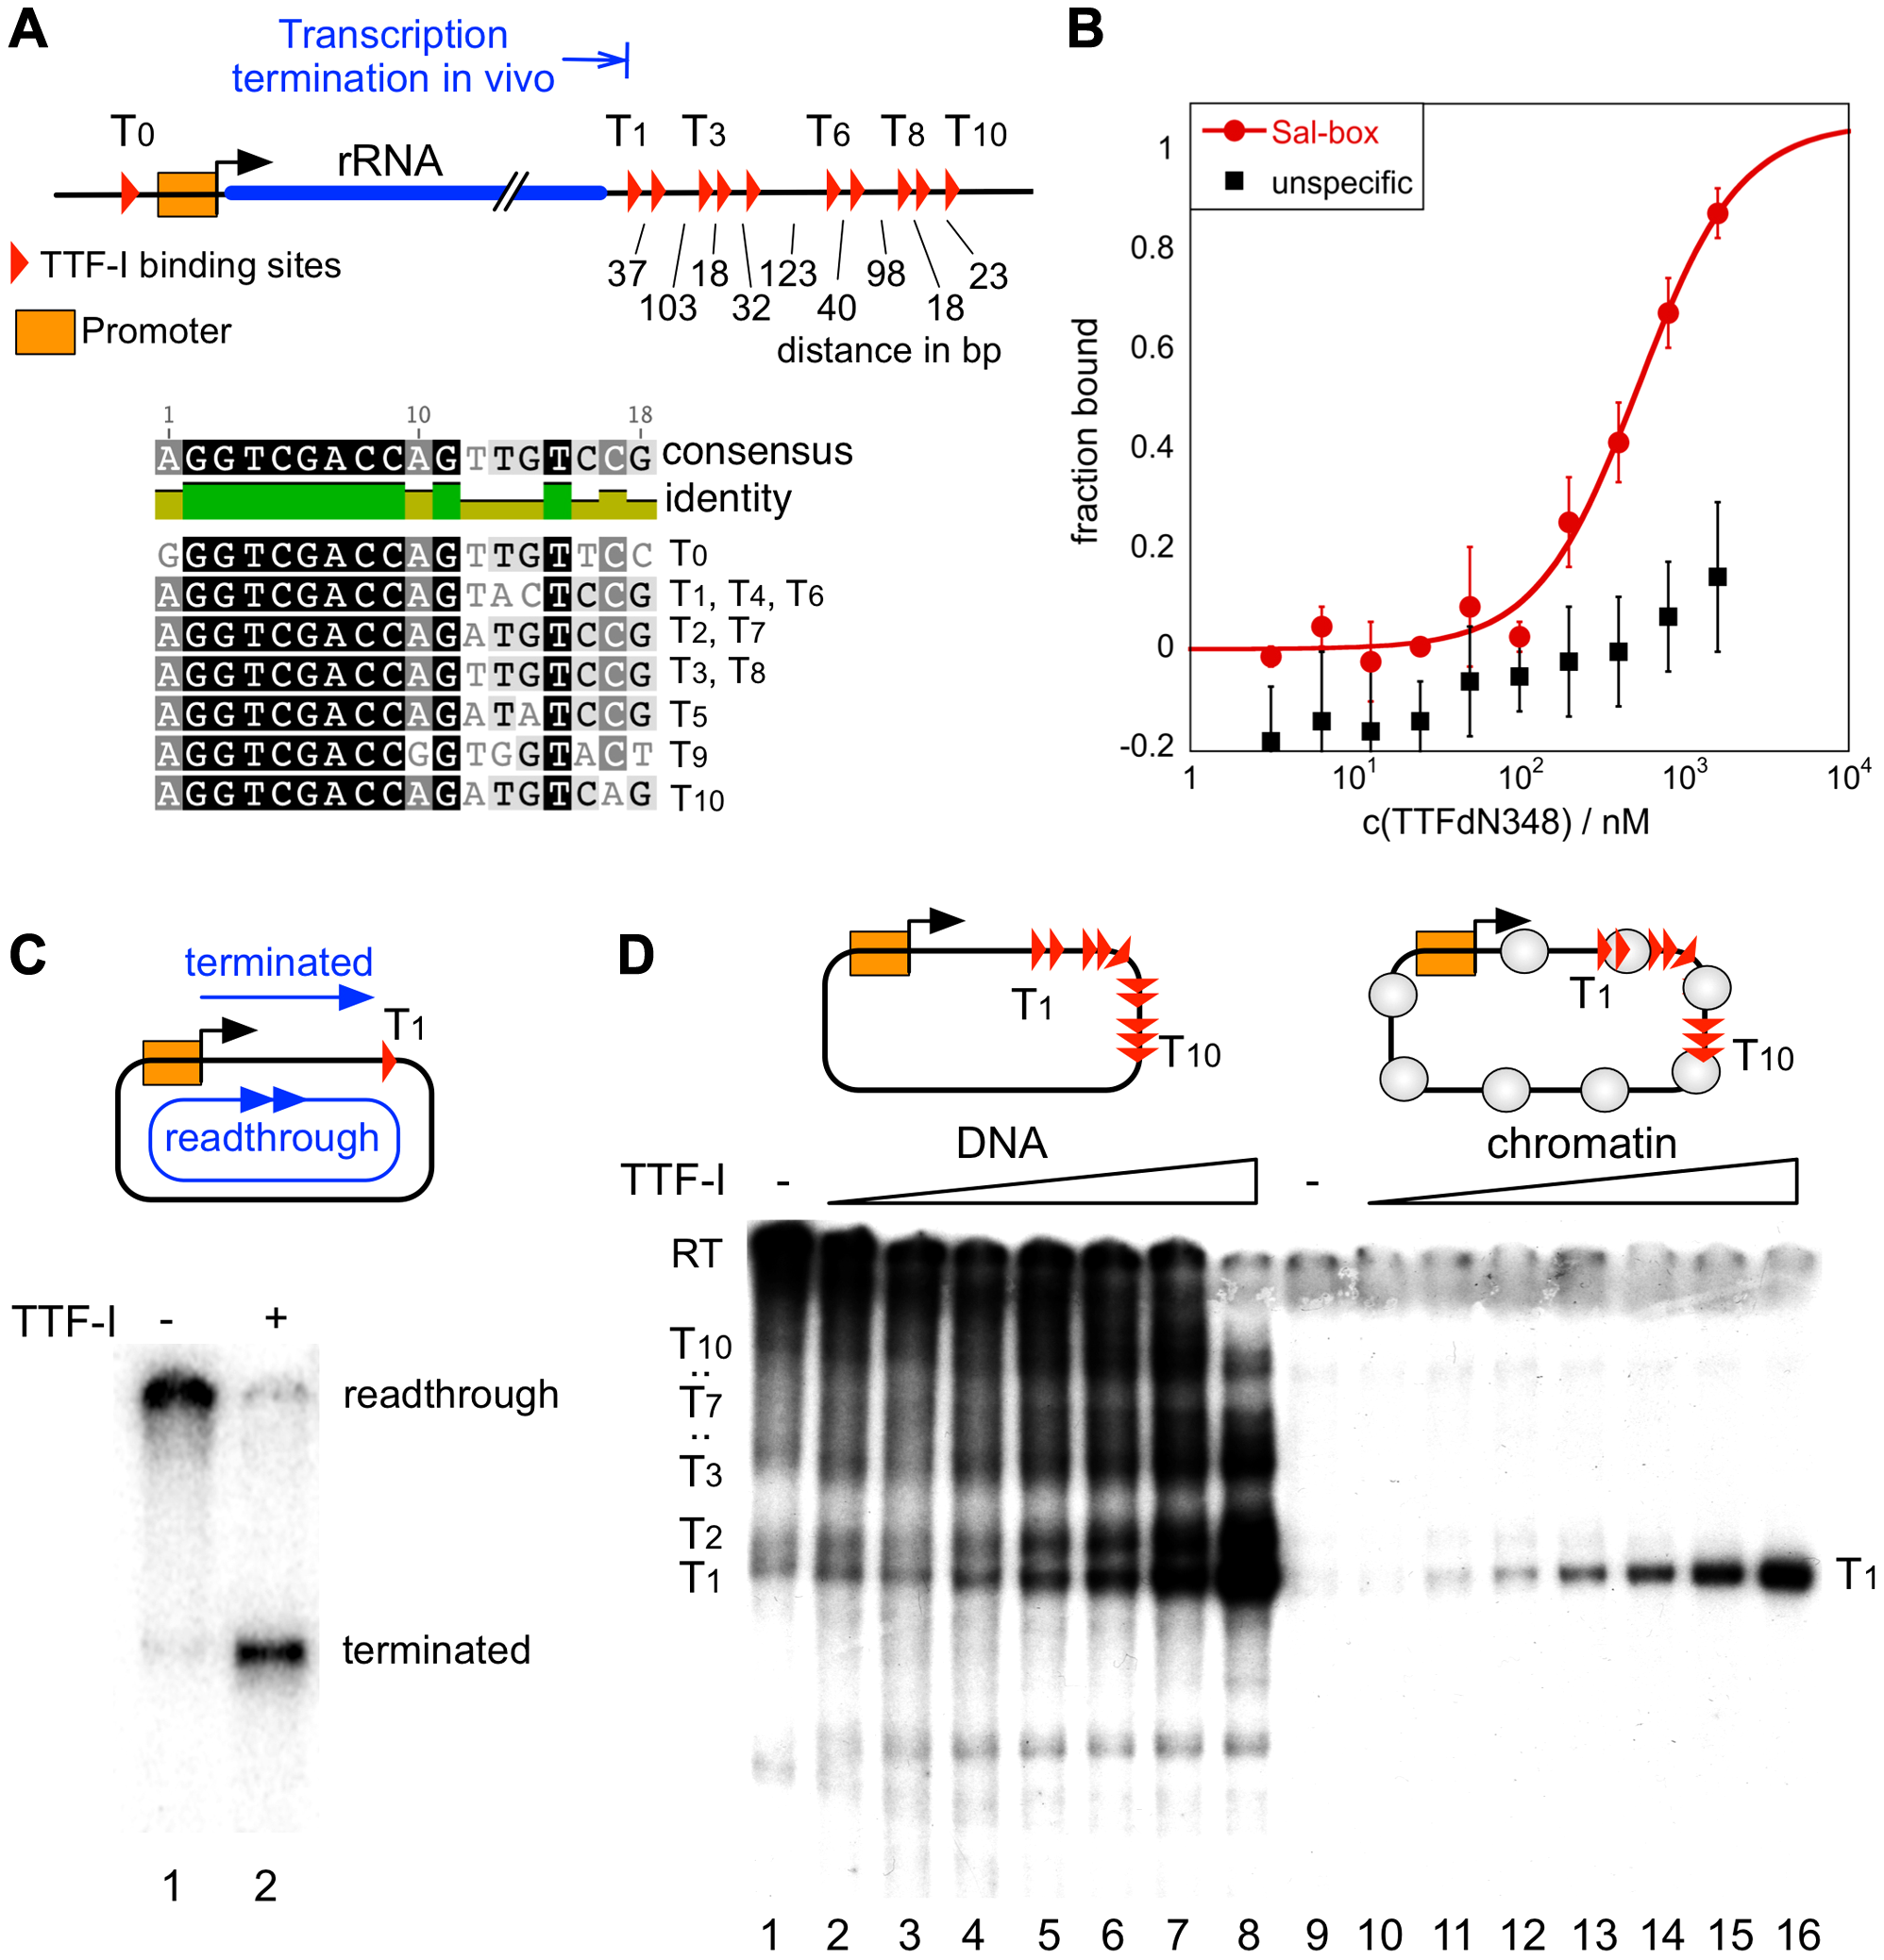 Chromatin-specific termination at the homotypic cluster of TTF-I.